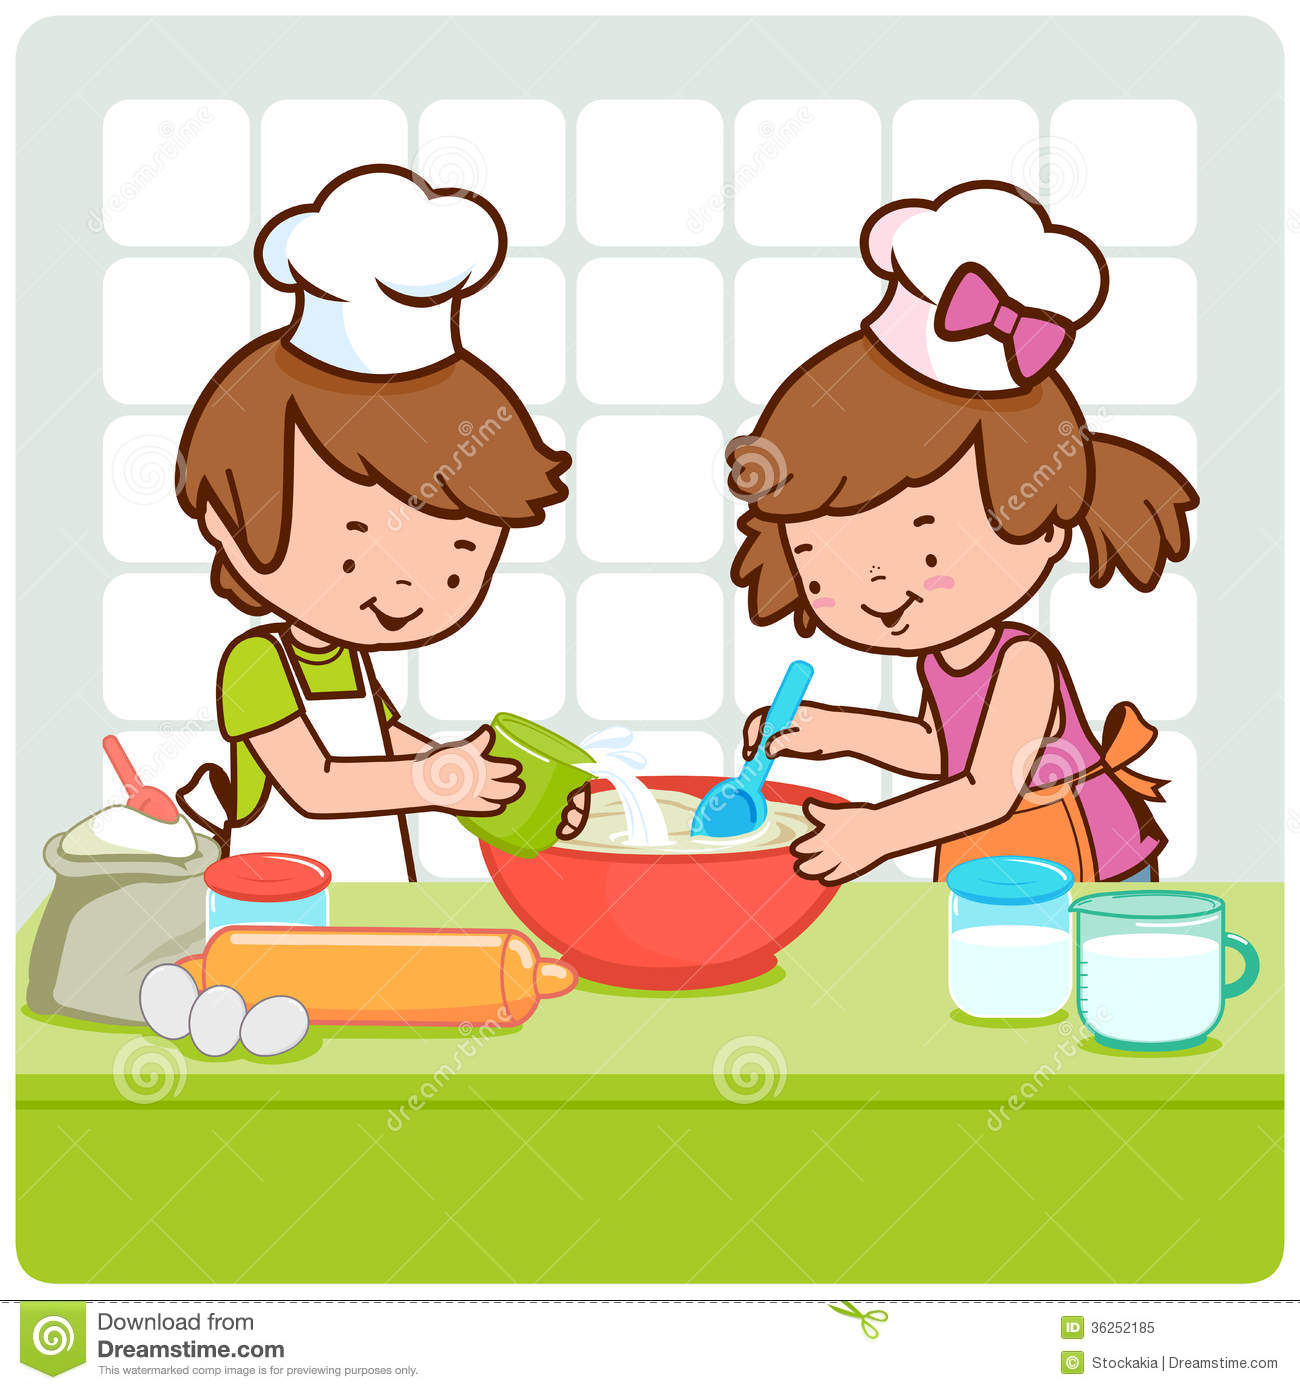 Chip clipart kid. Kids baking panda free